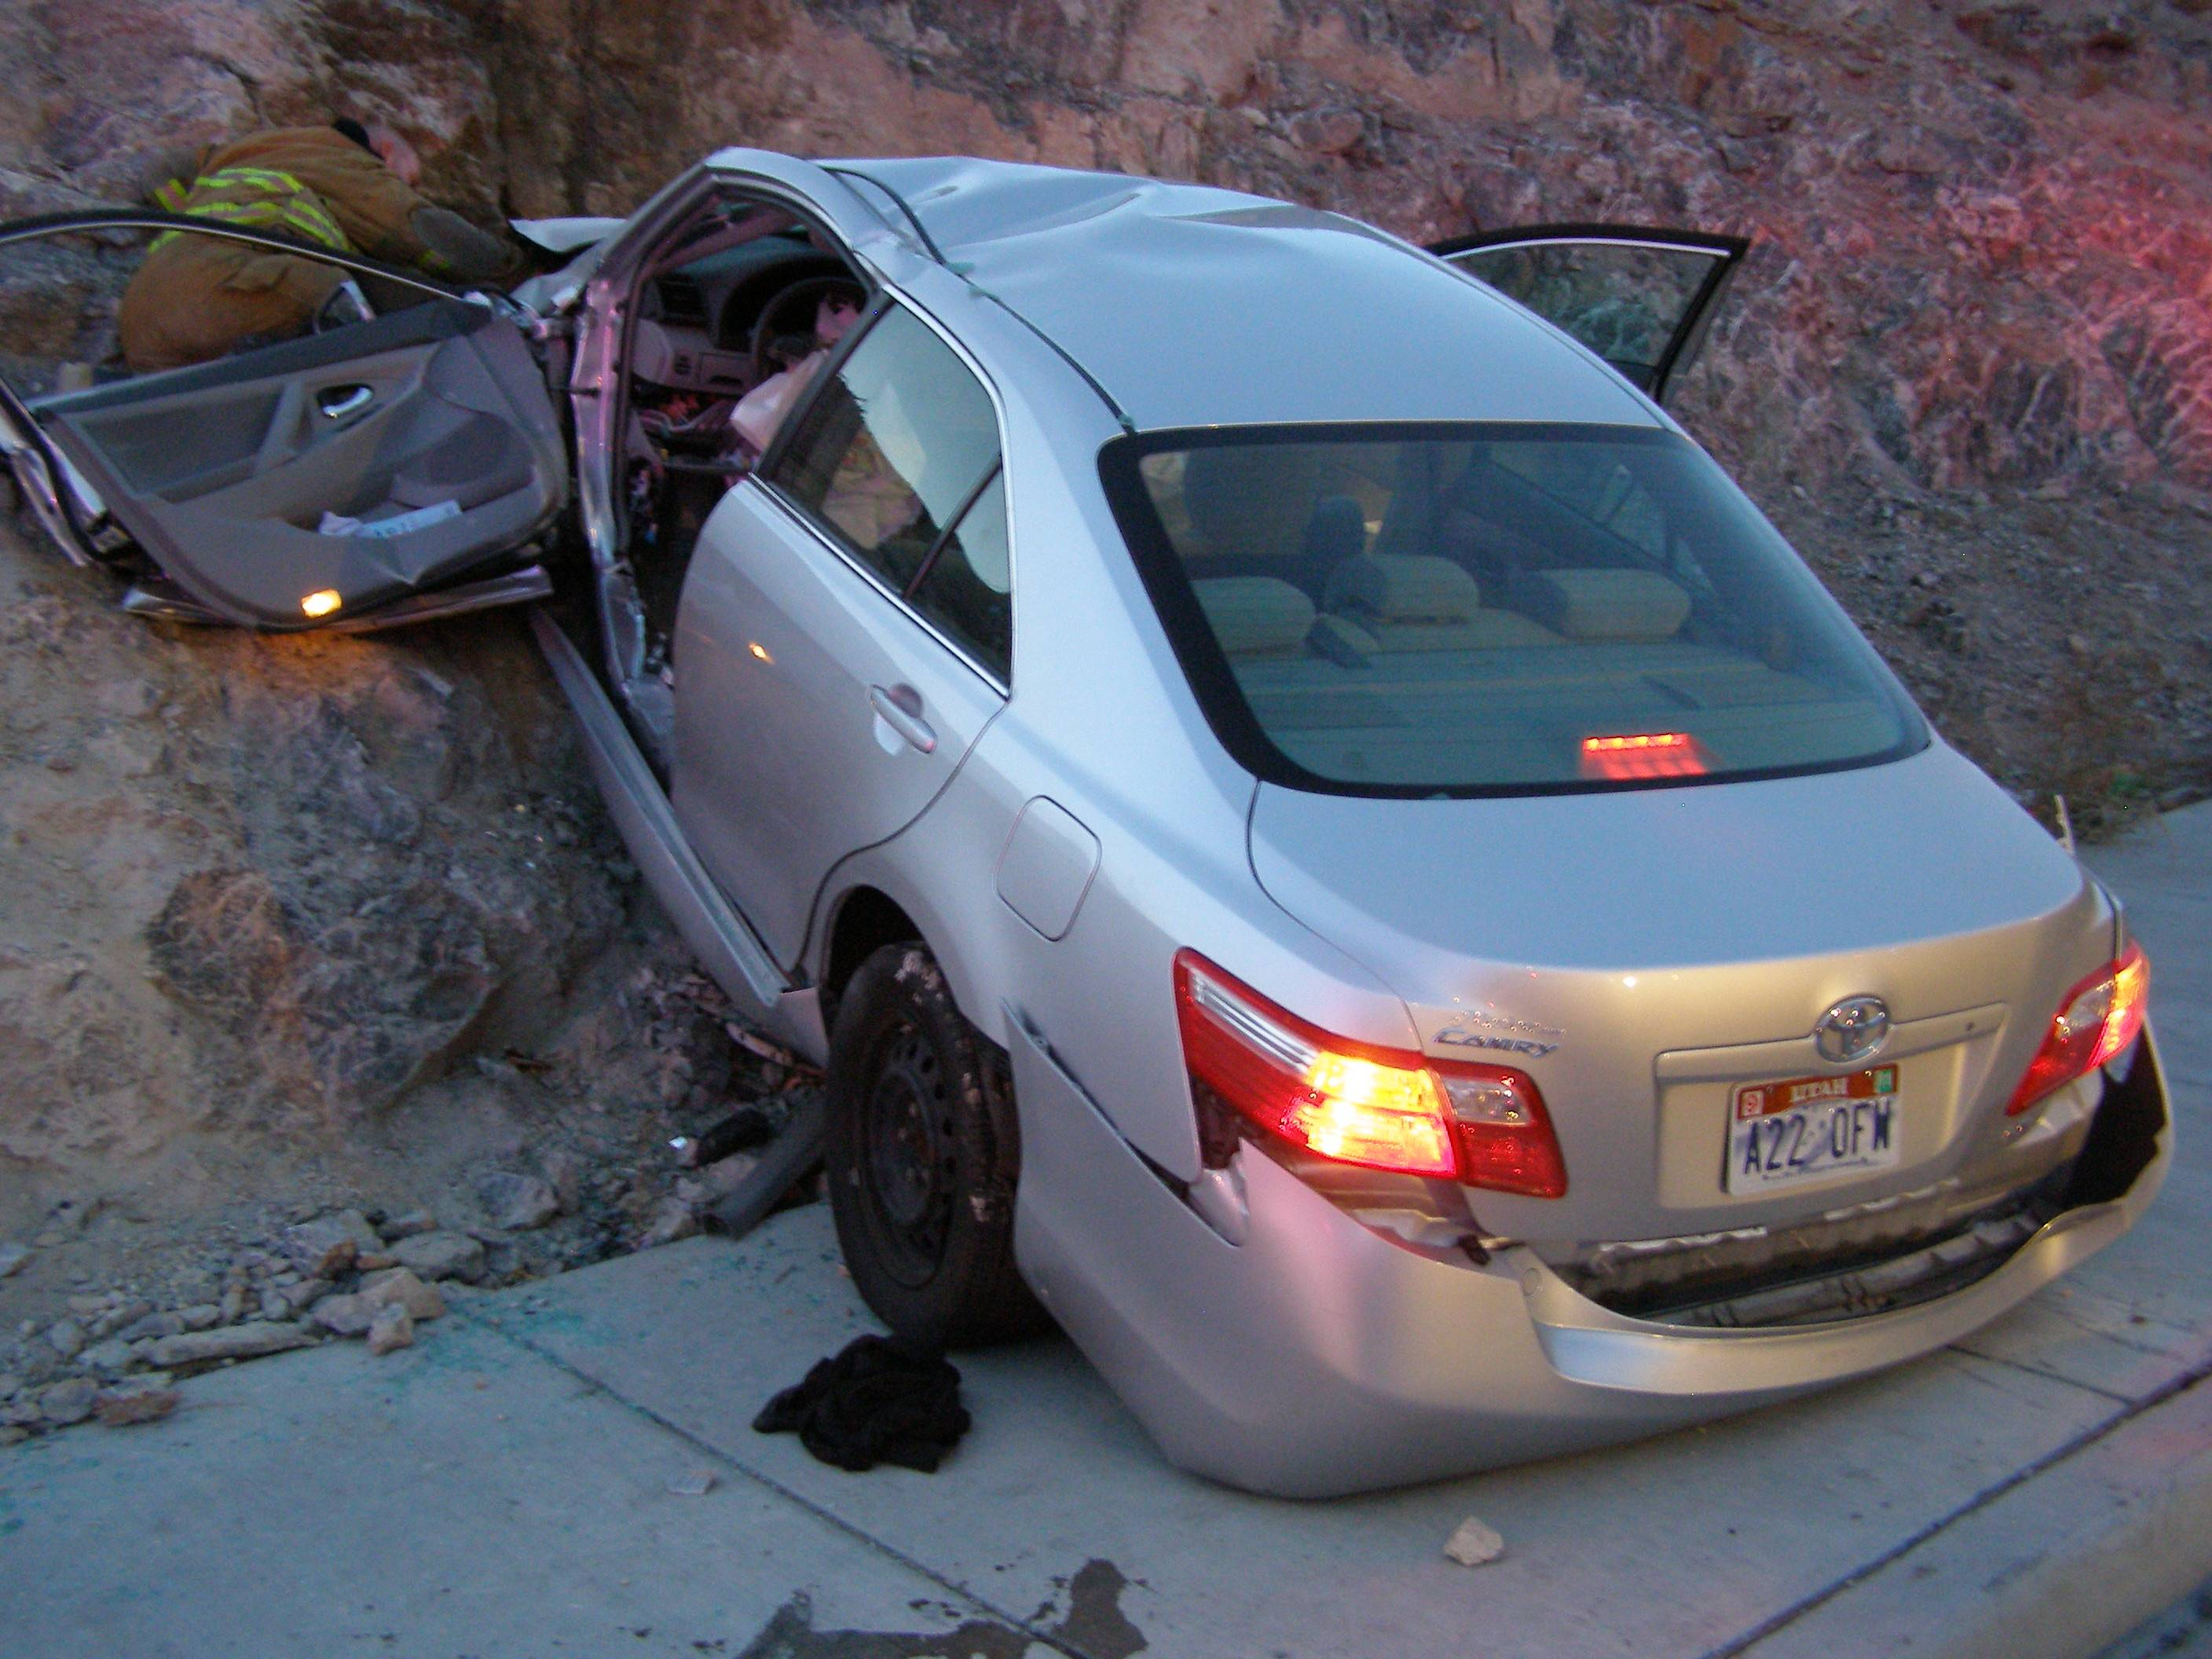 In this Nov. 5, 2010 photo released by the Utah Highway Patrol, a Toyota Camry is shown after it crashed as it exited Interstate 80 in Wendover, Utah. Police suspect problems with the Camry's accelerator or floor mat caused the crash that left two people dead and two others injured.